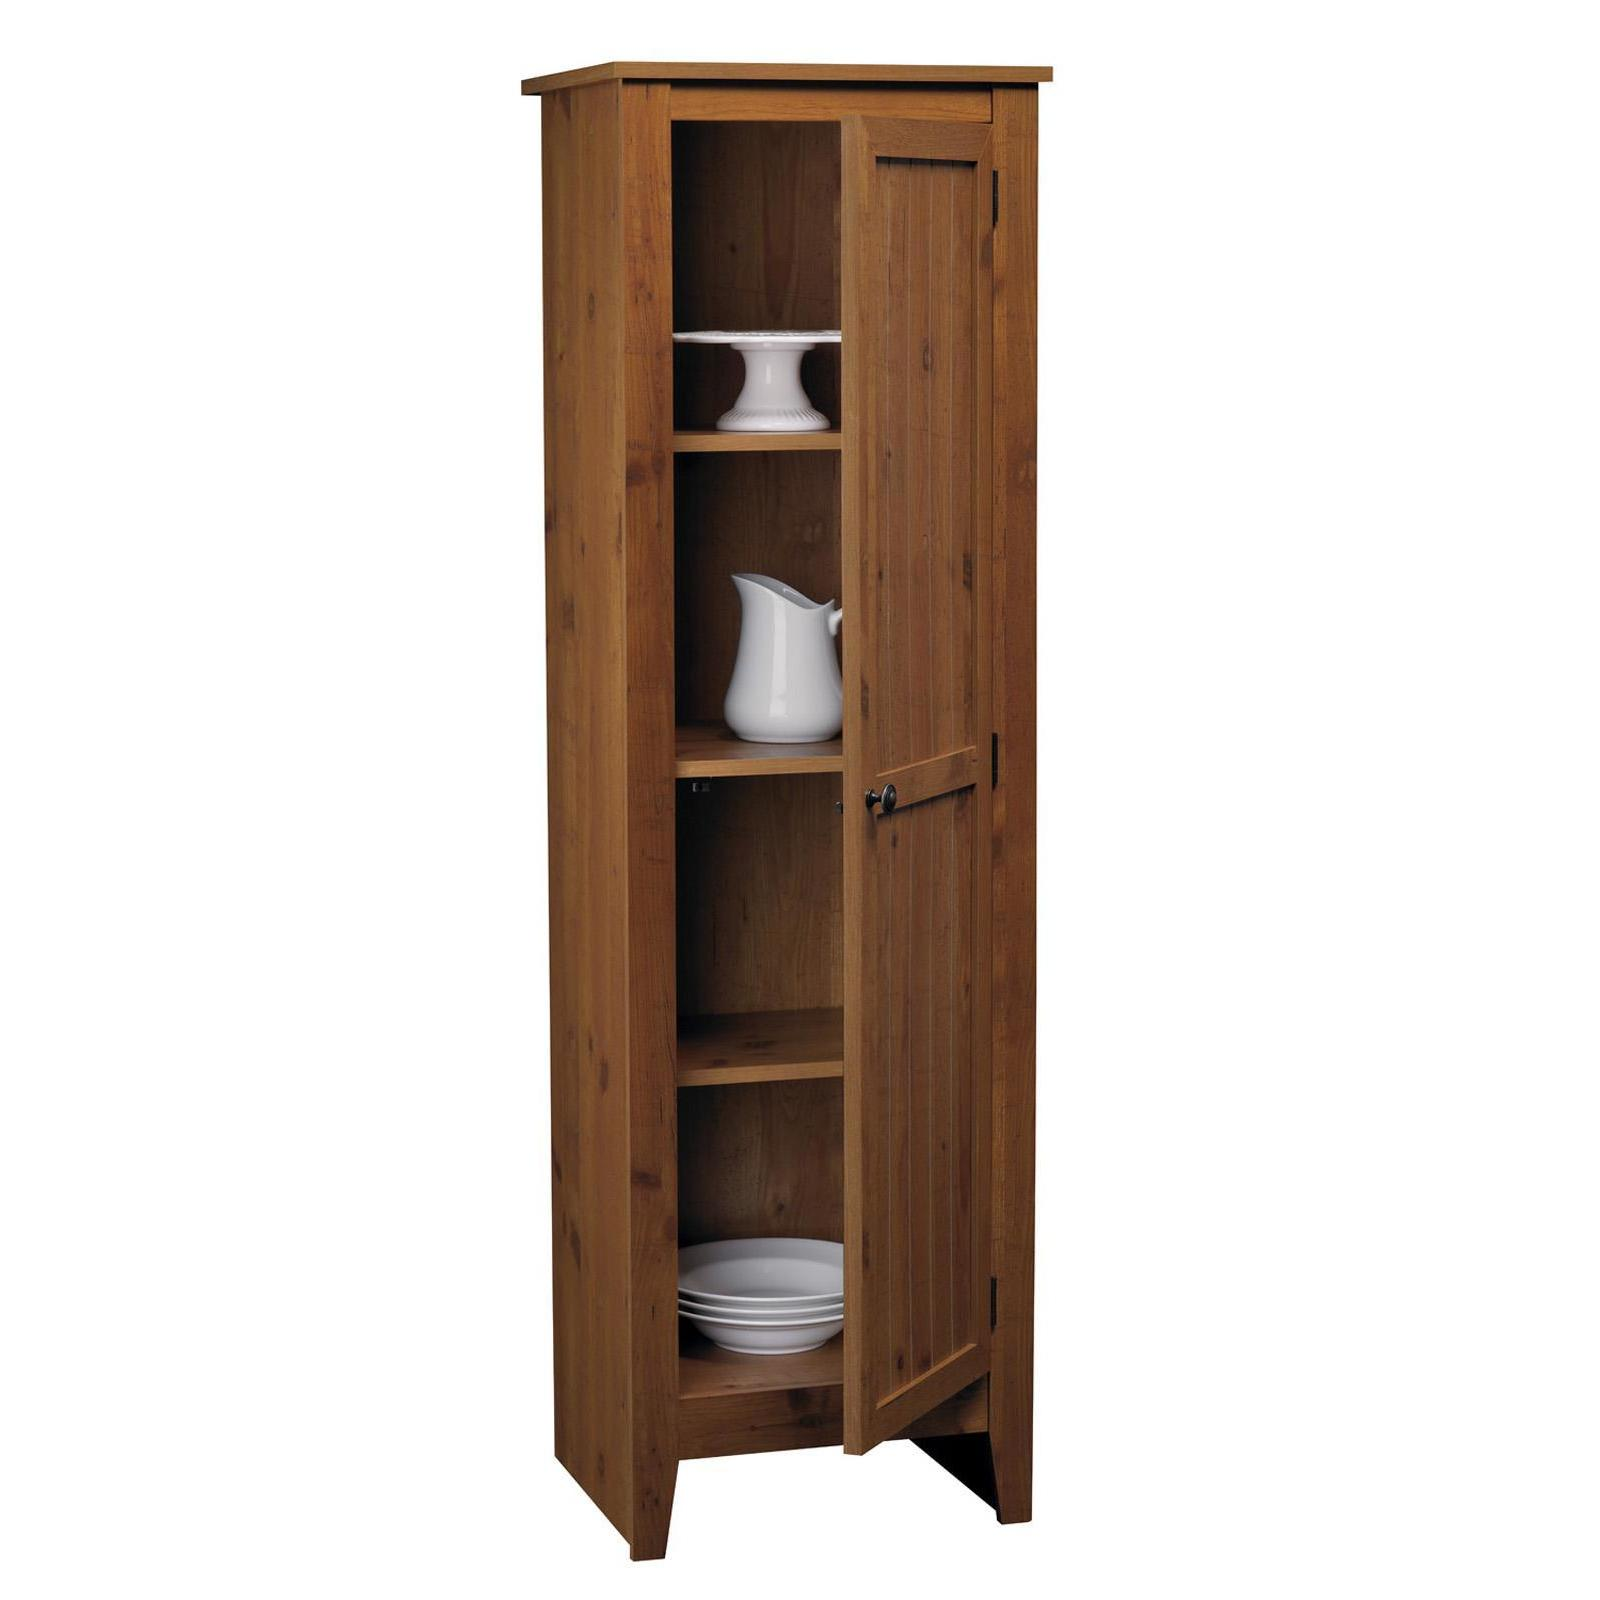 SystemBuild Single-door Storage Pantry Cabinet - Free Shipping Today -  Overstock.com - 18037047